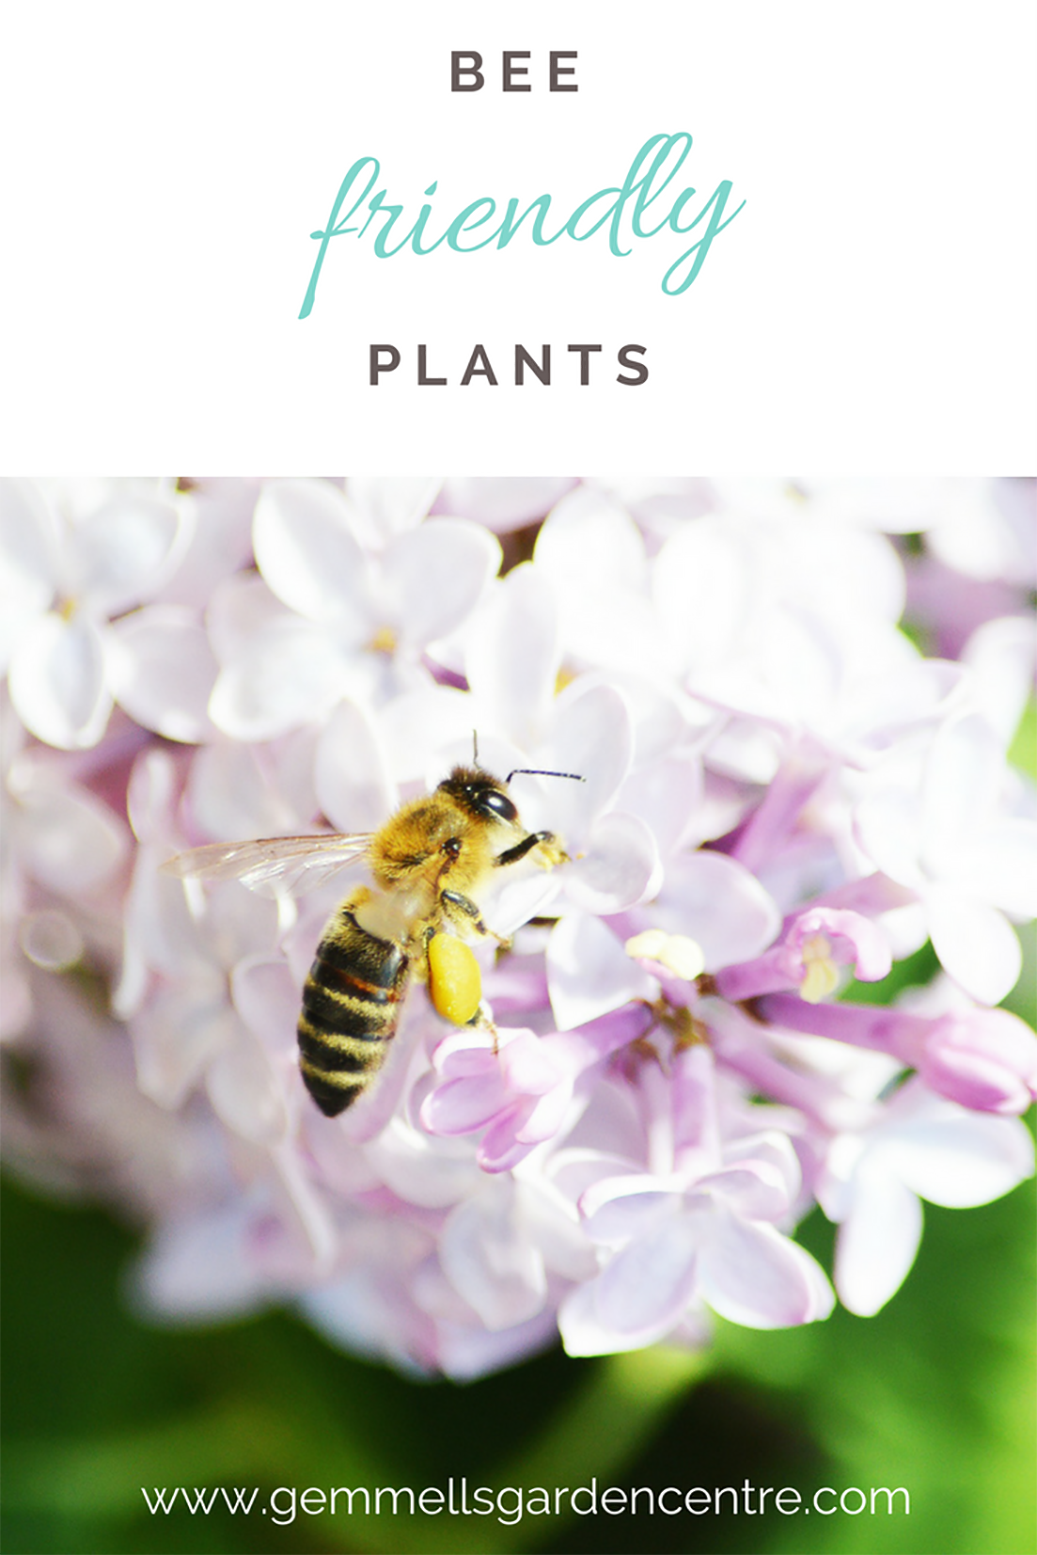 Bee Friendly Plants | Bee on a Lilac Bush